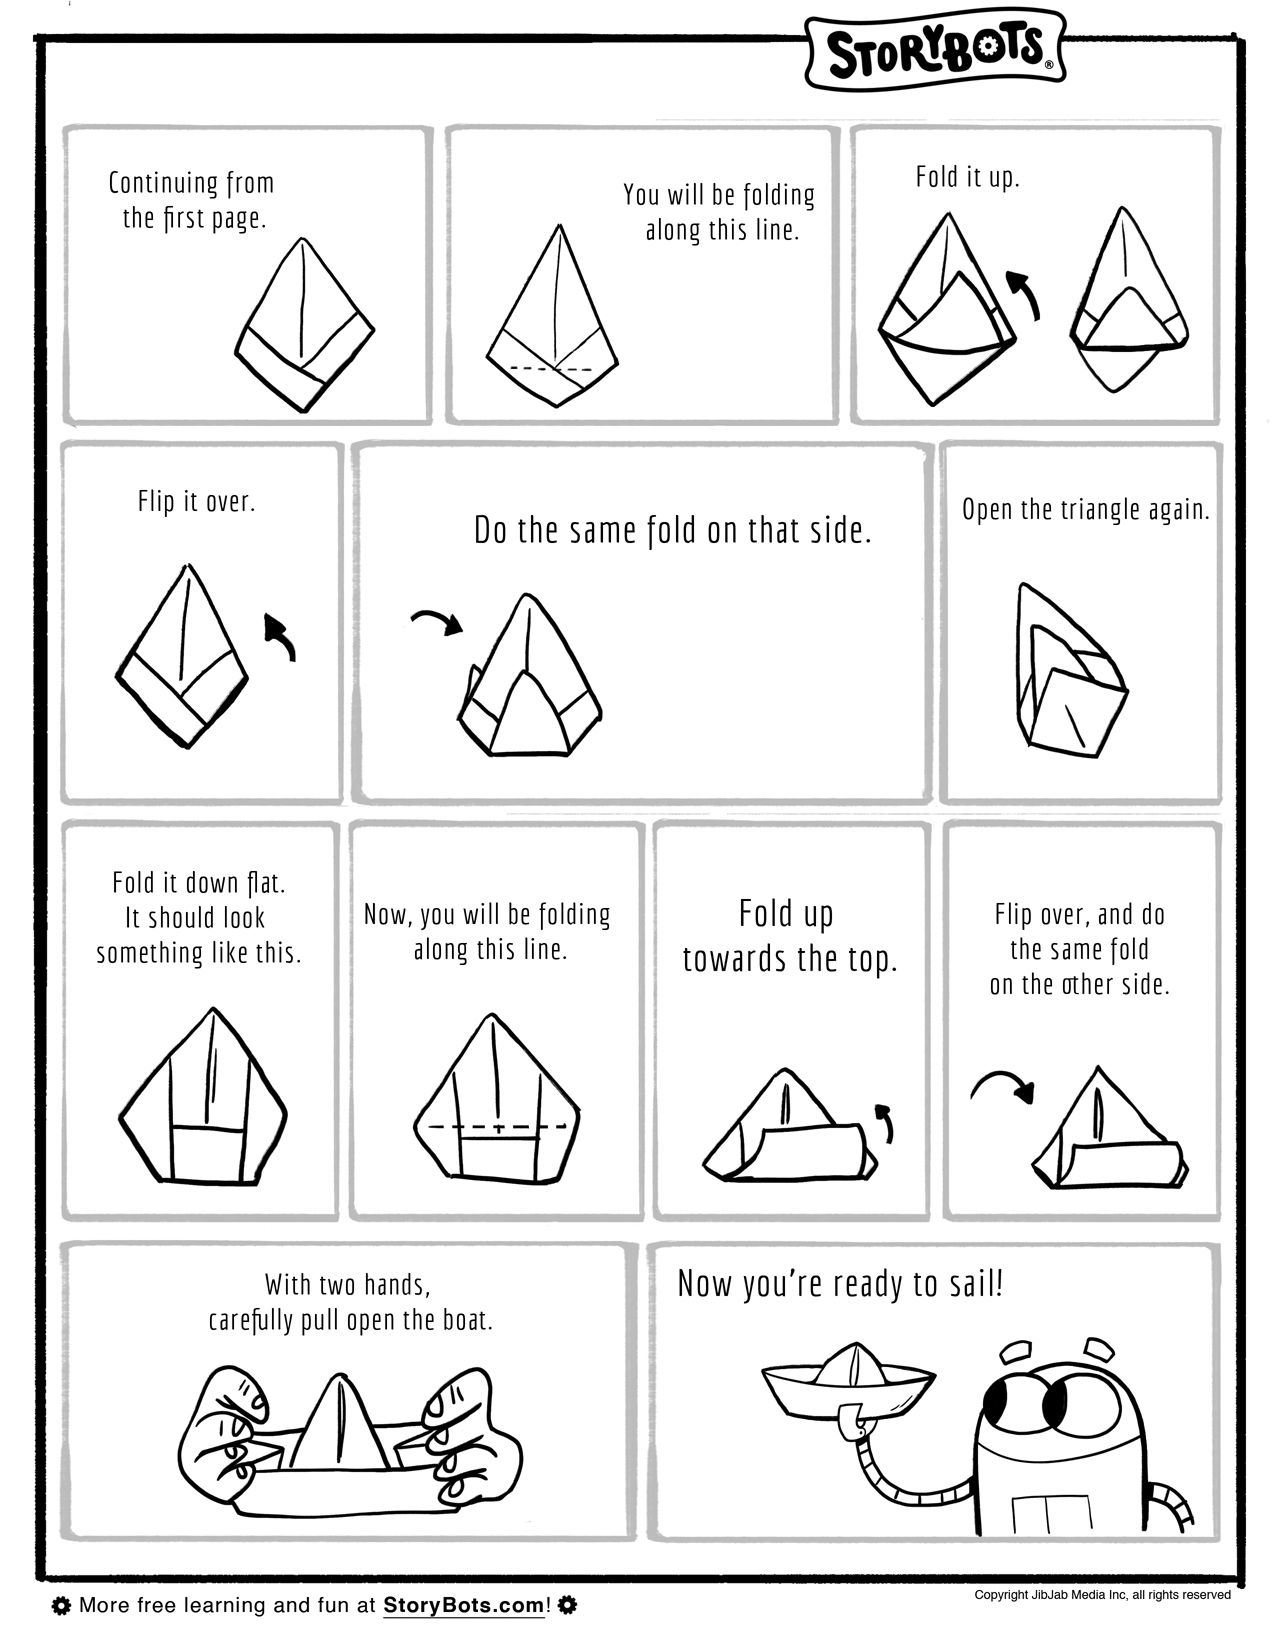 How To Fold A Paper Boat Part 2